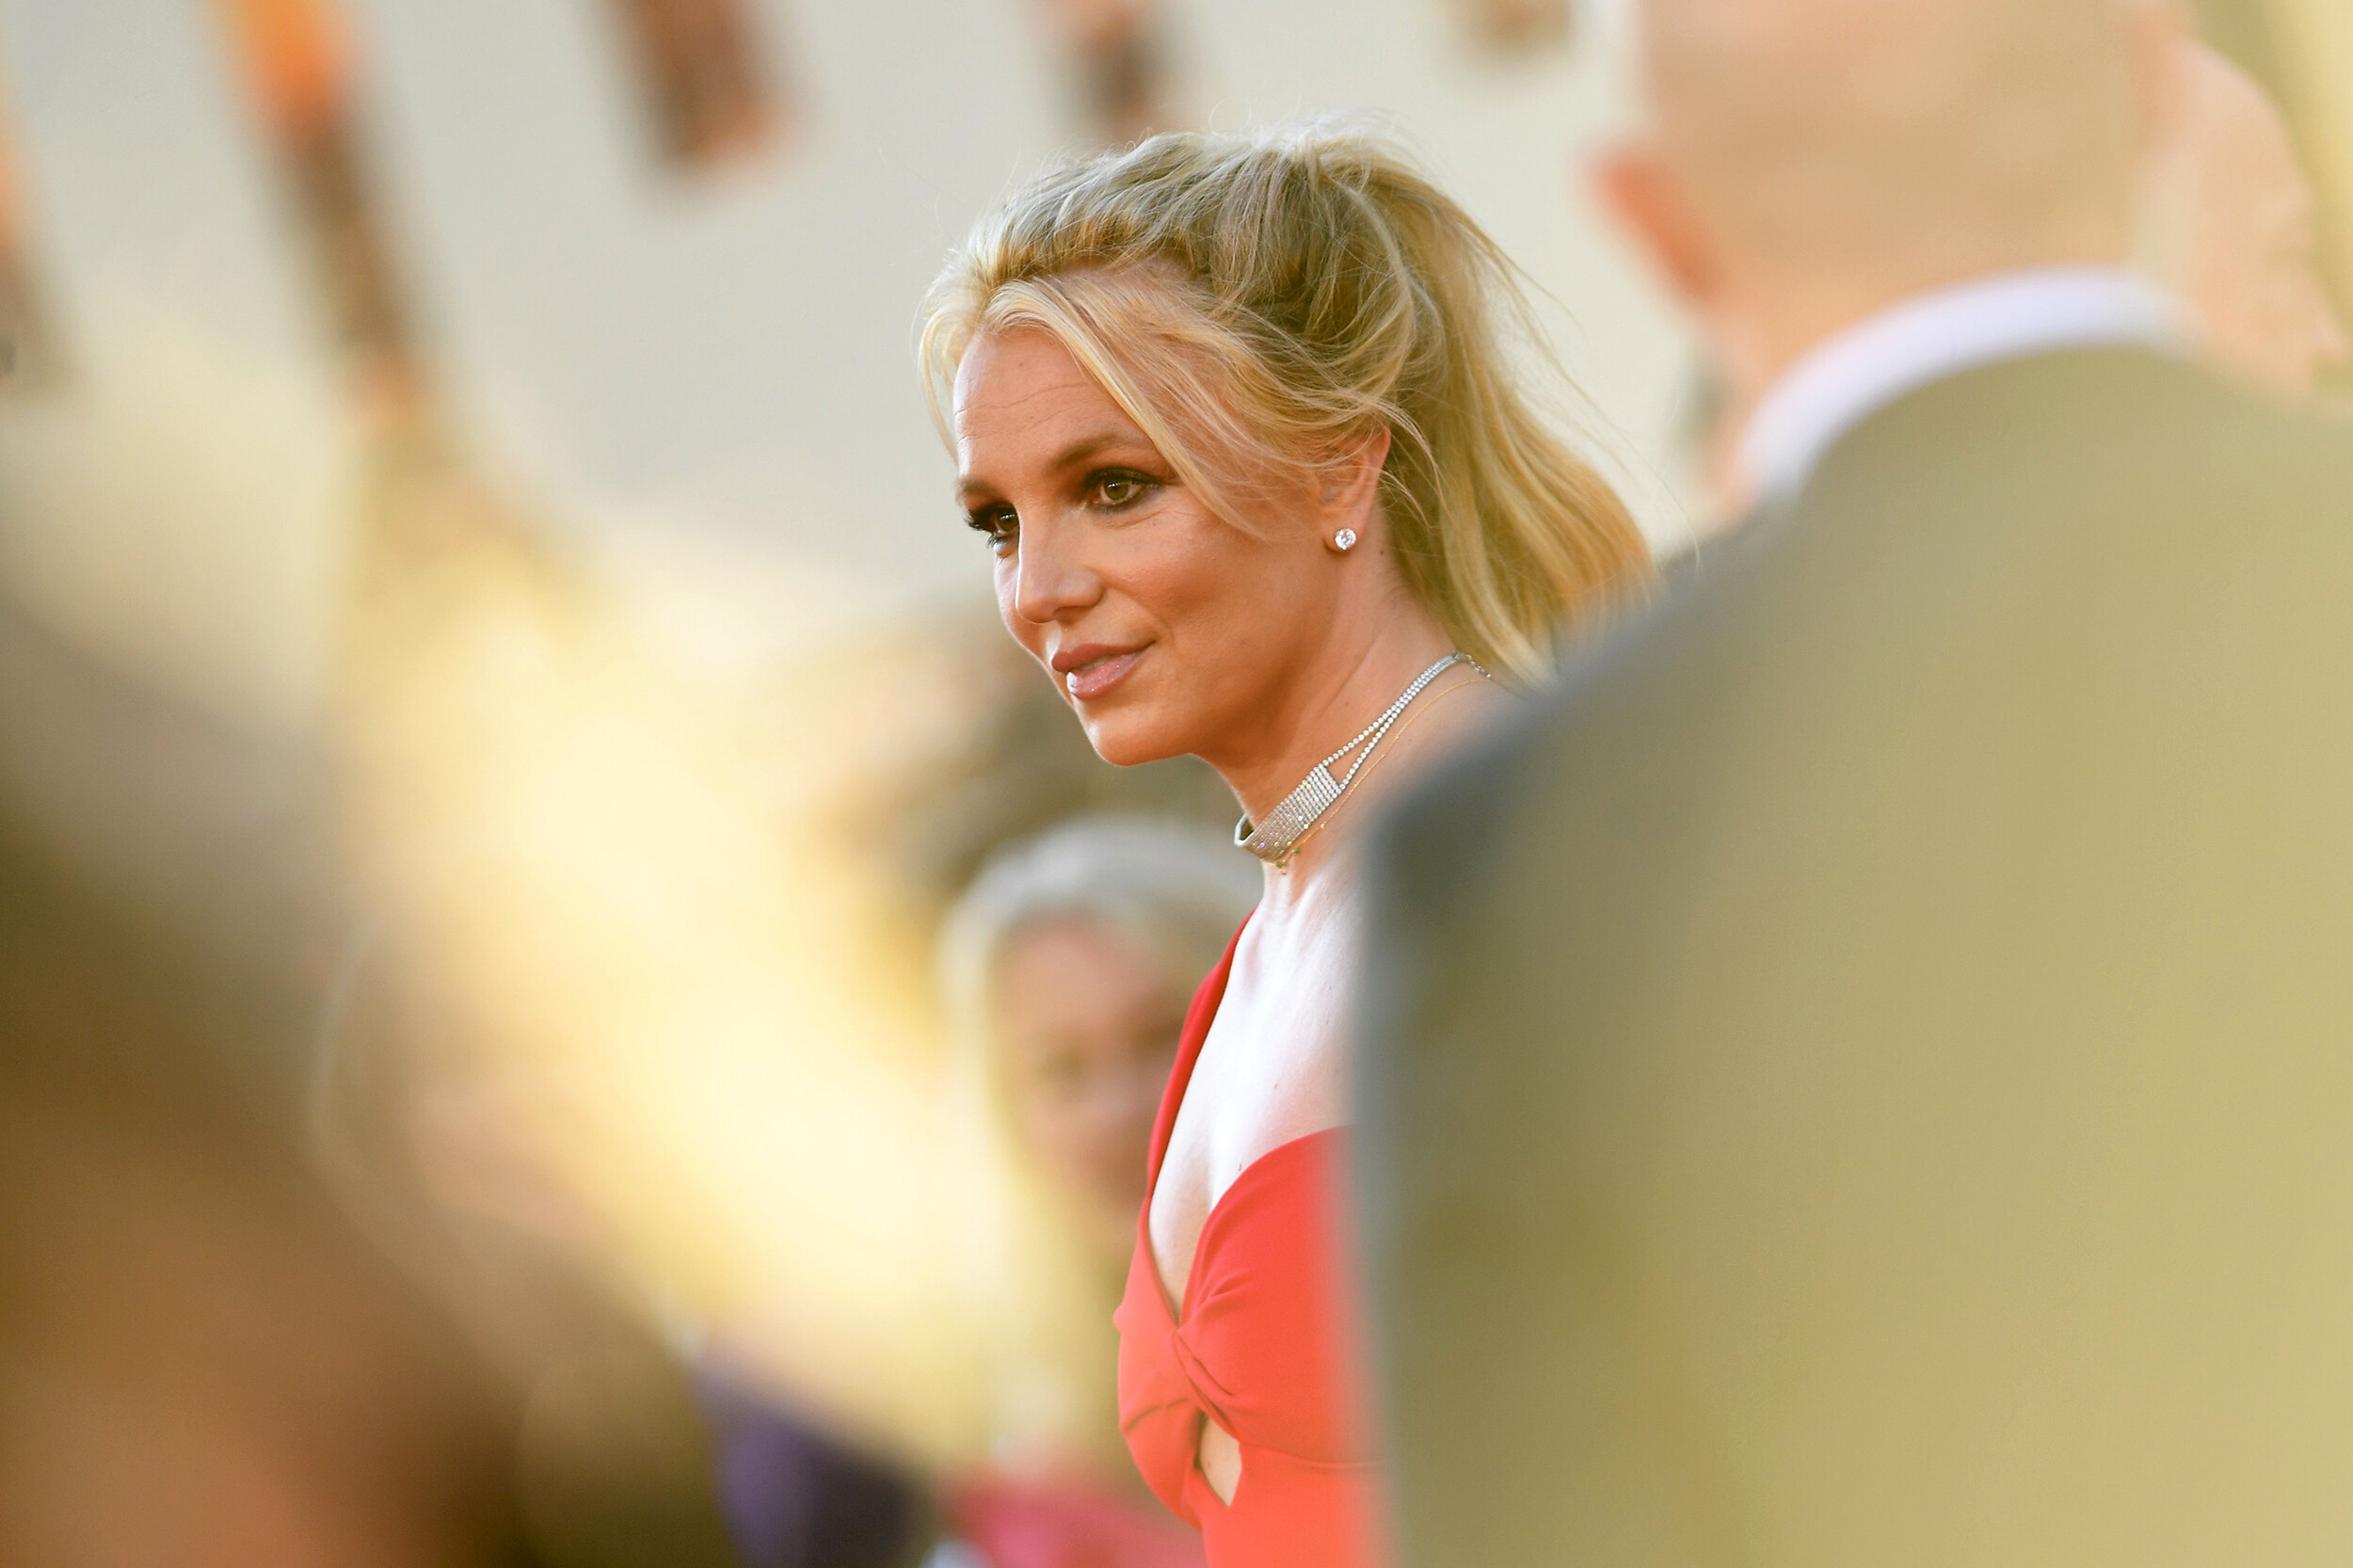 Britney Spears' court-appointed attorney has submitted petition to resign